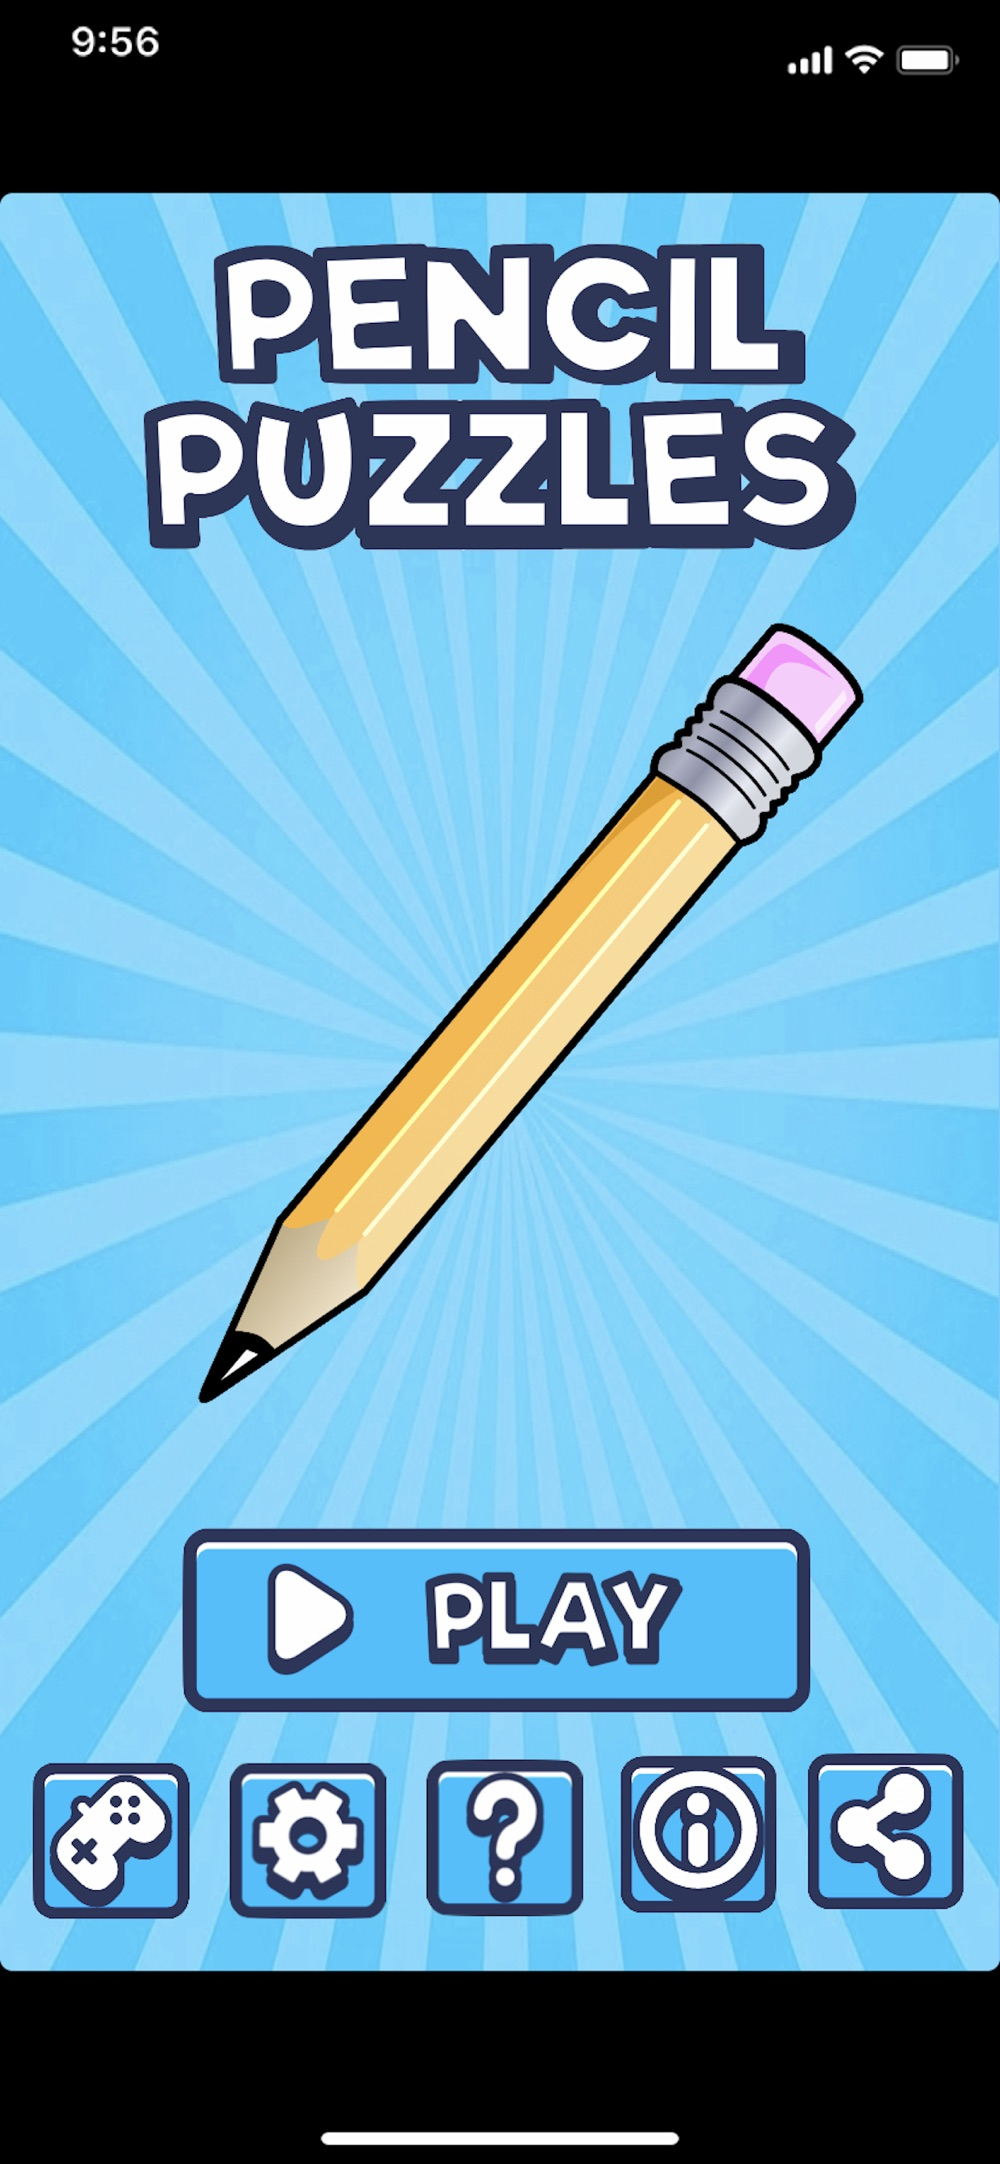 Hack tool for Pencil Puzzles